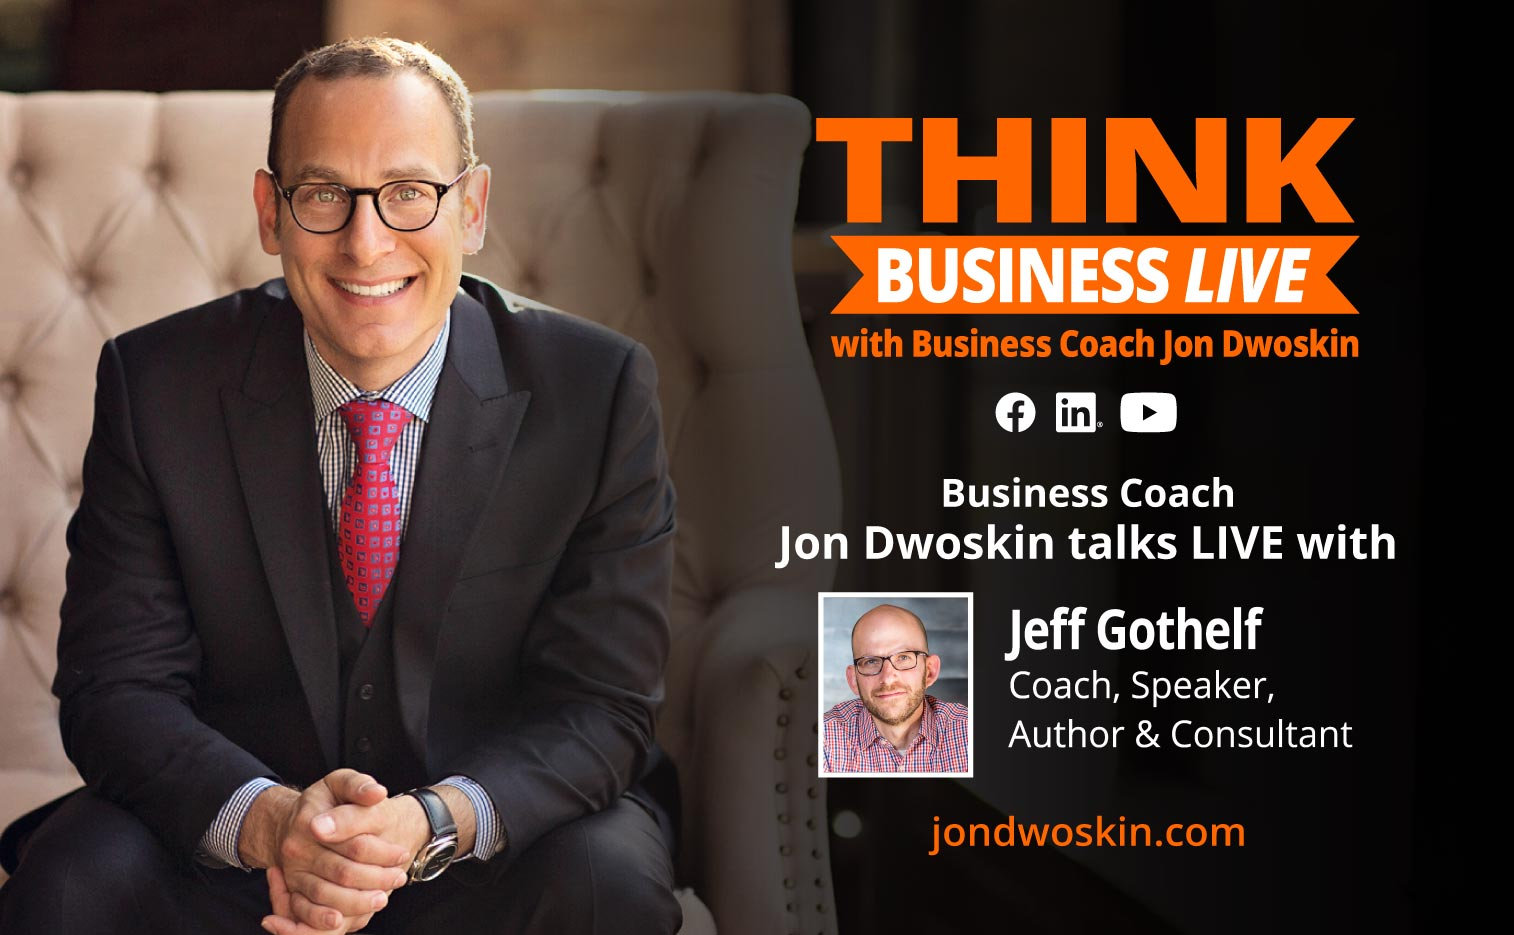 THINK Business LIVE: Jon Dwoskin Talks with Jeff Gothelf